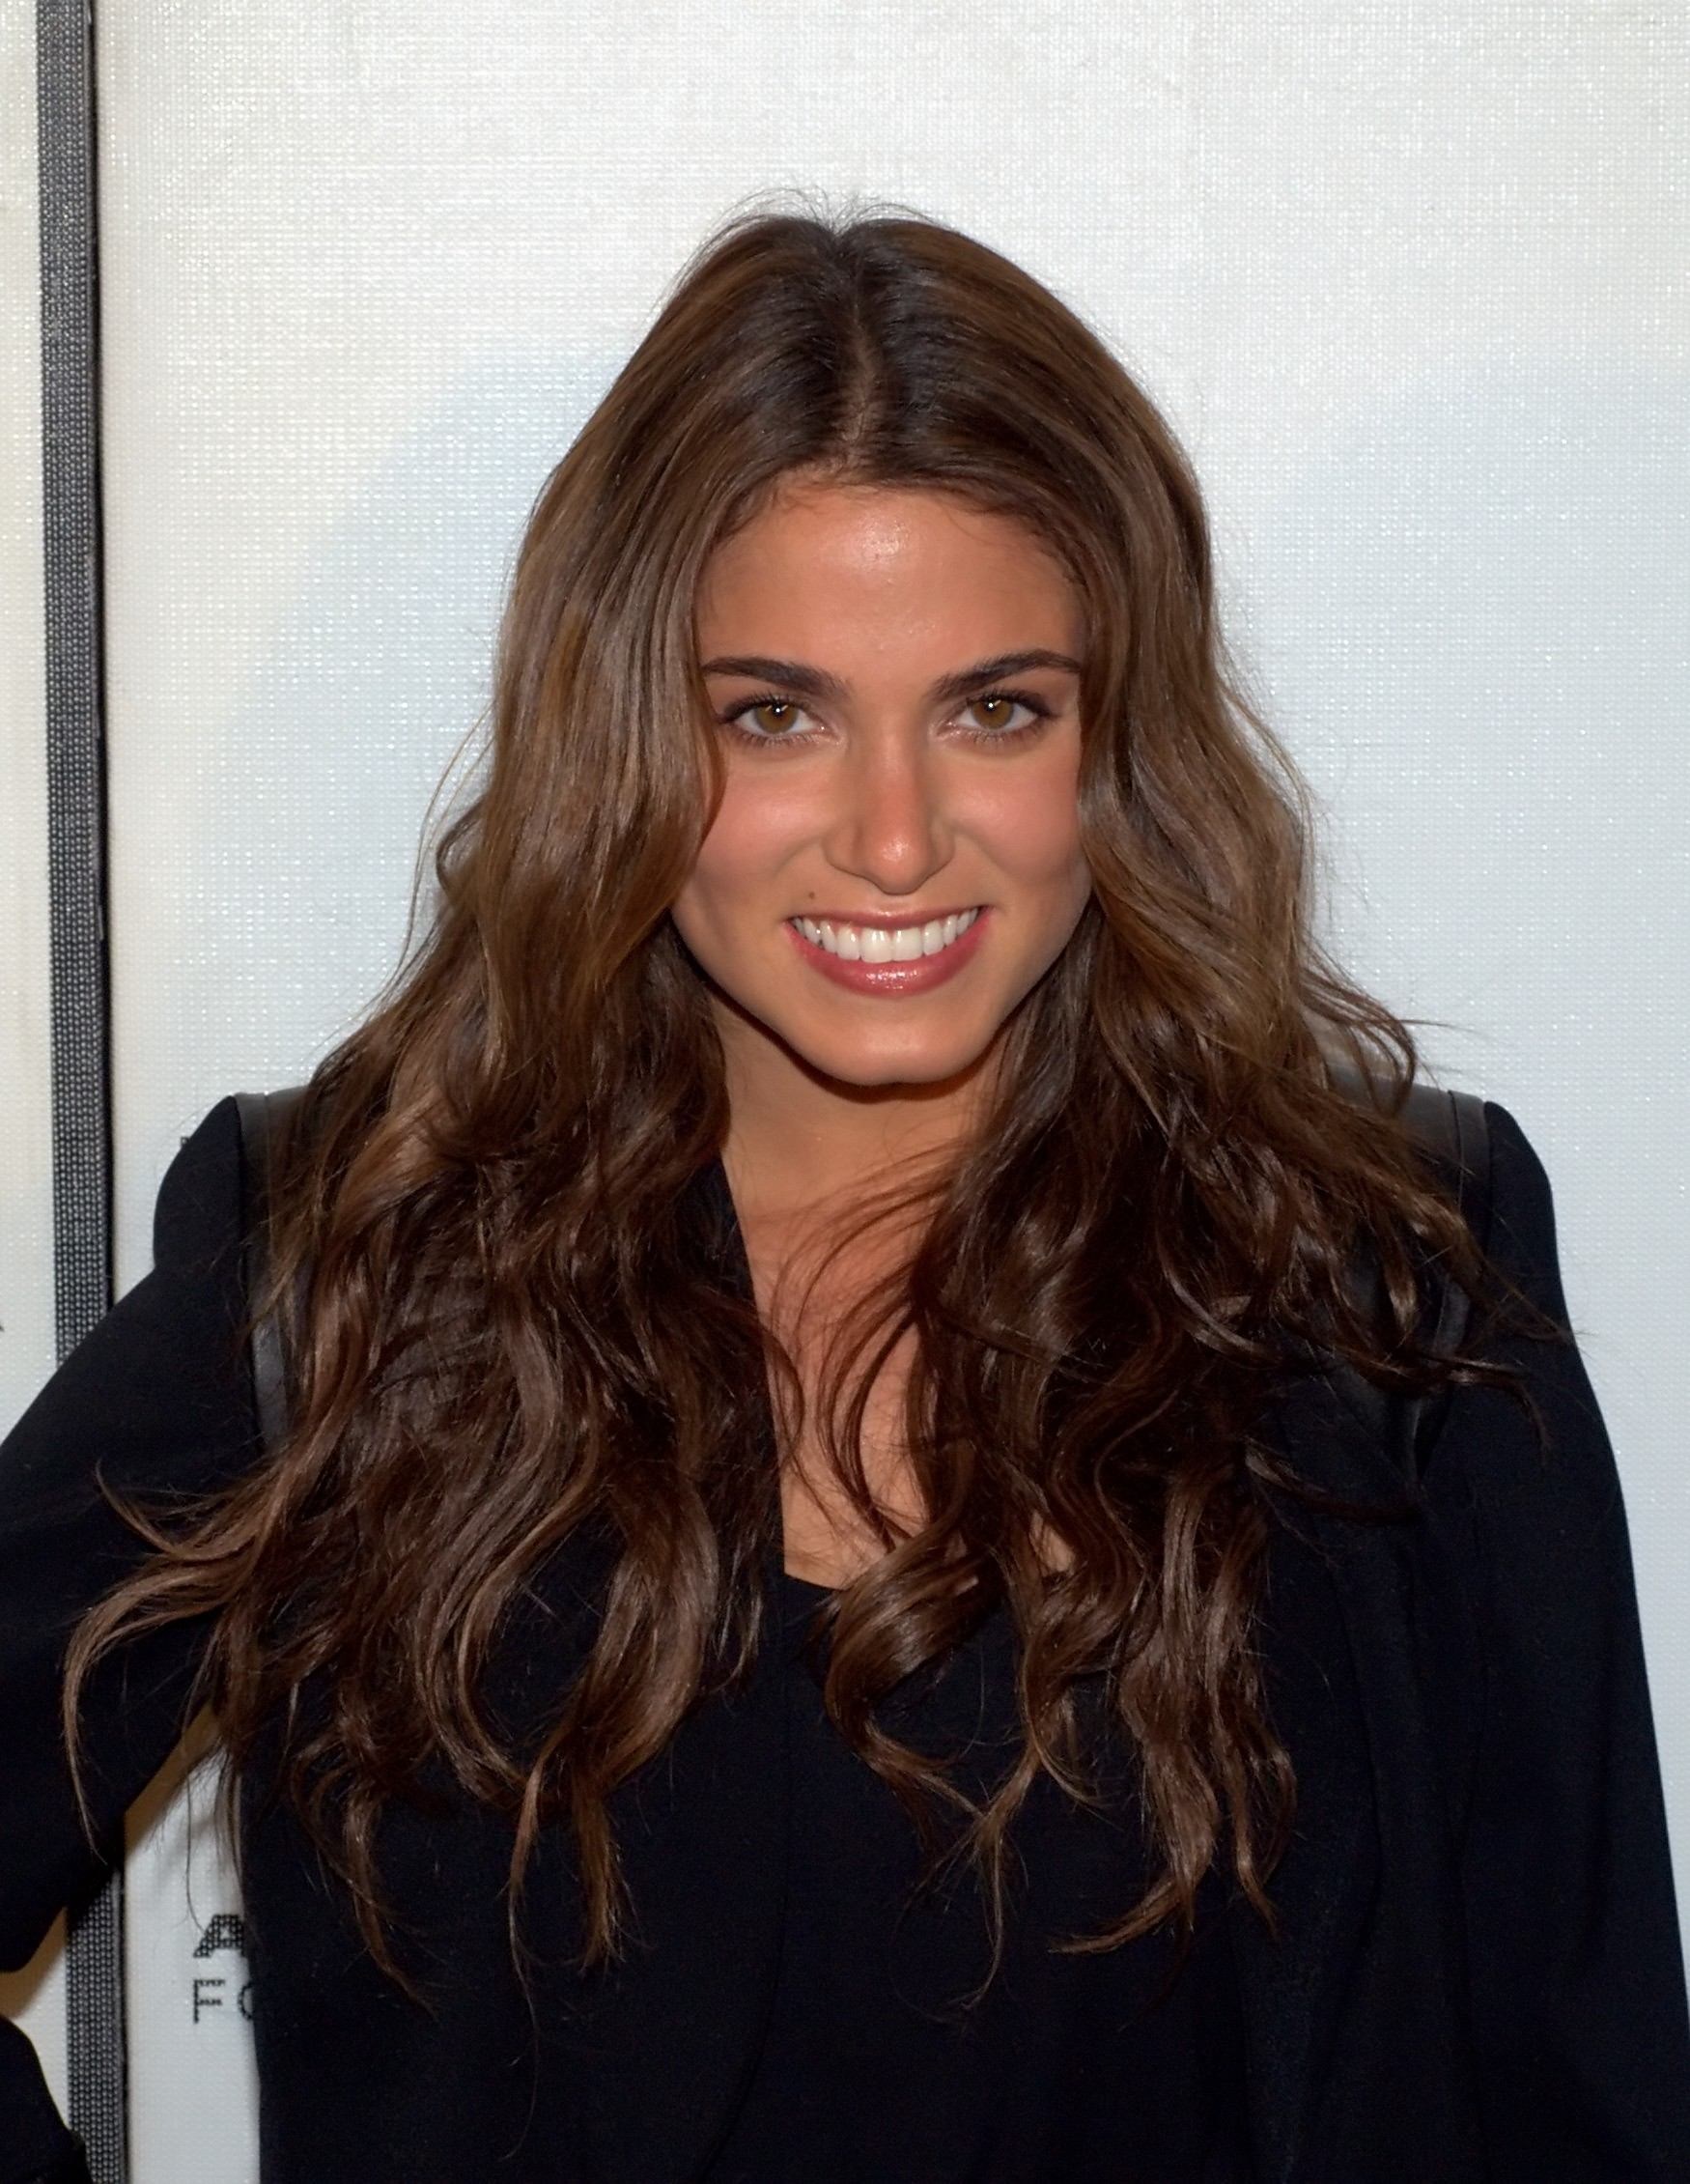 Nikki Reed - Wikipedia, the free encyclopedia